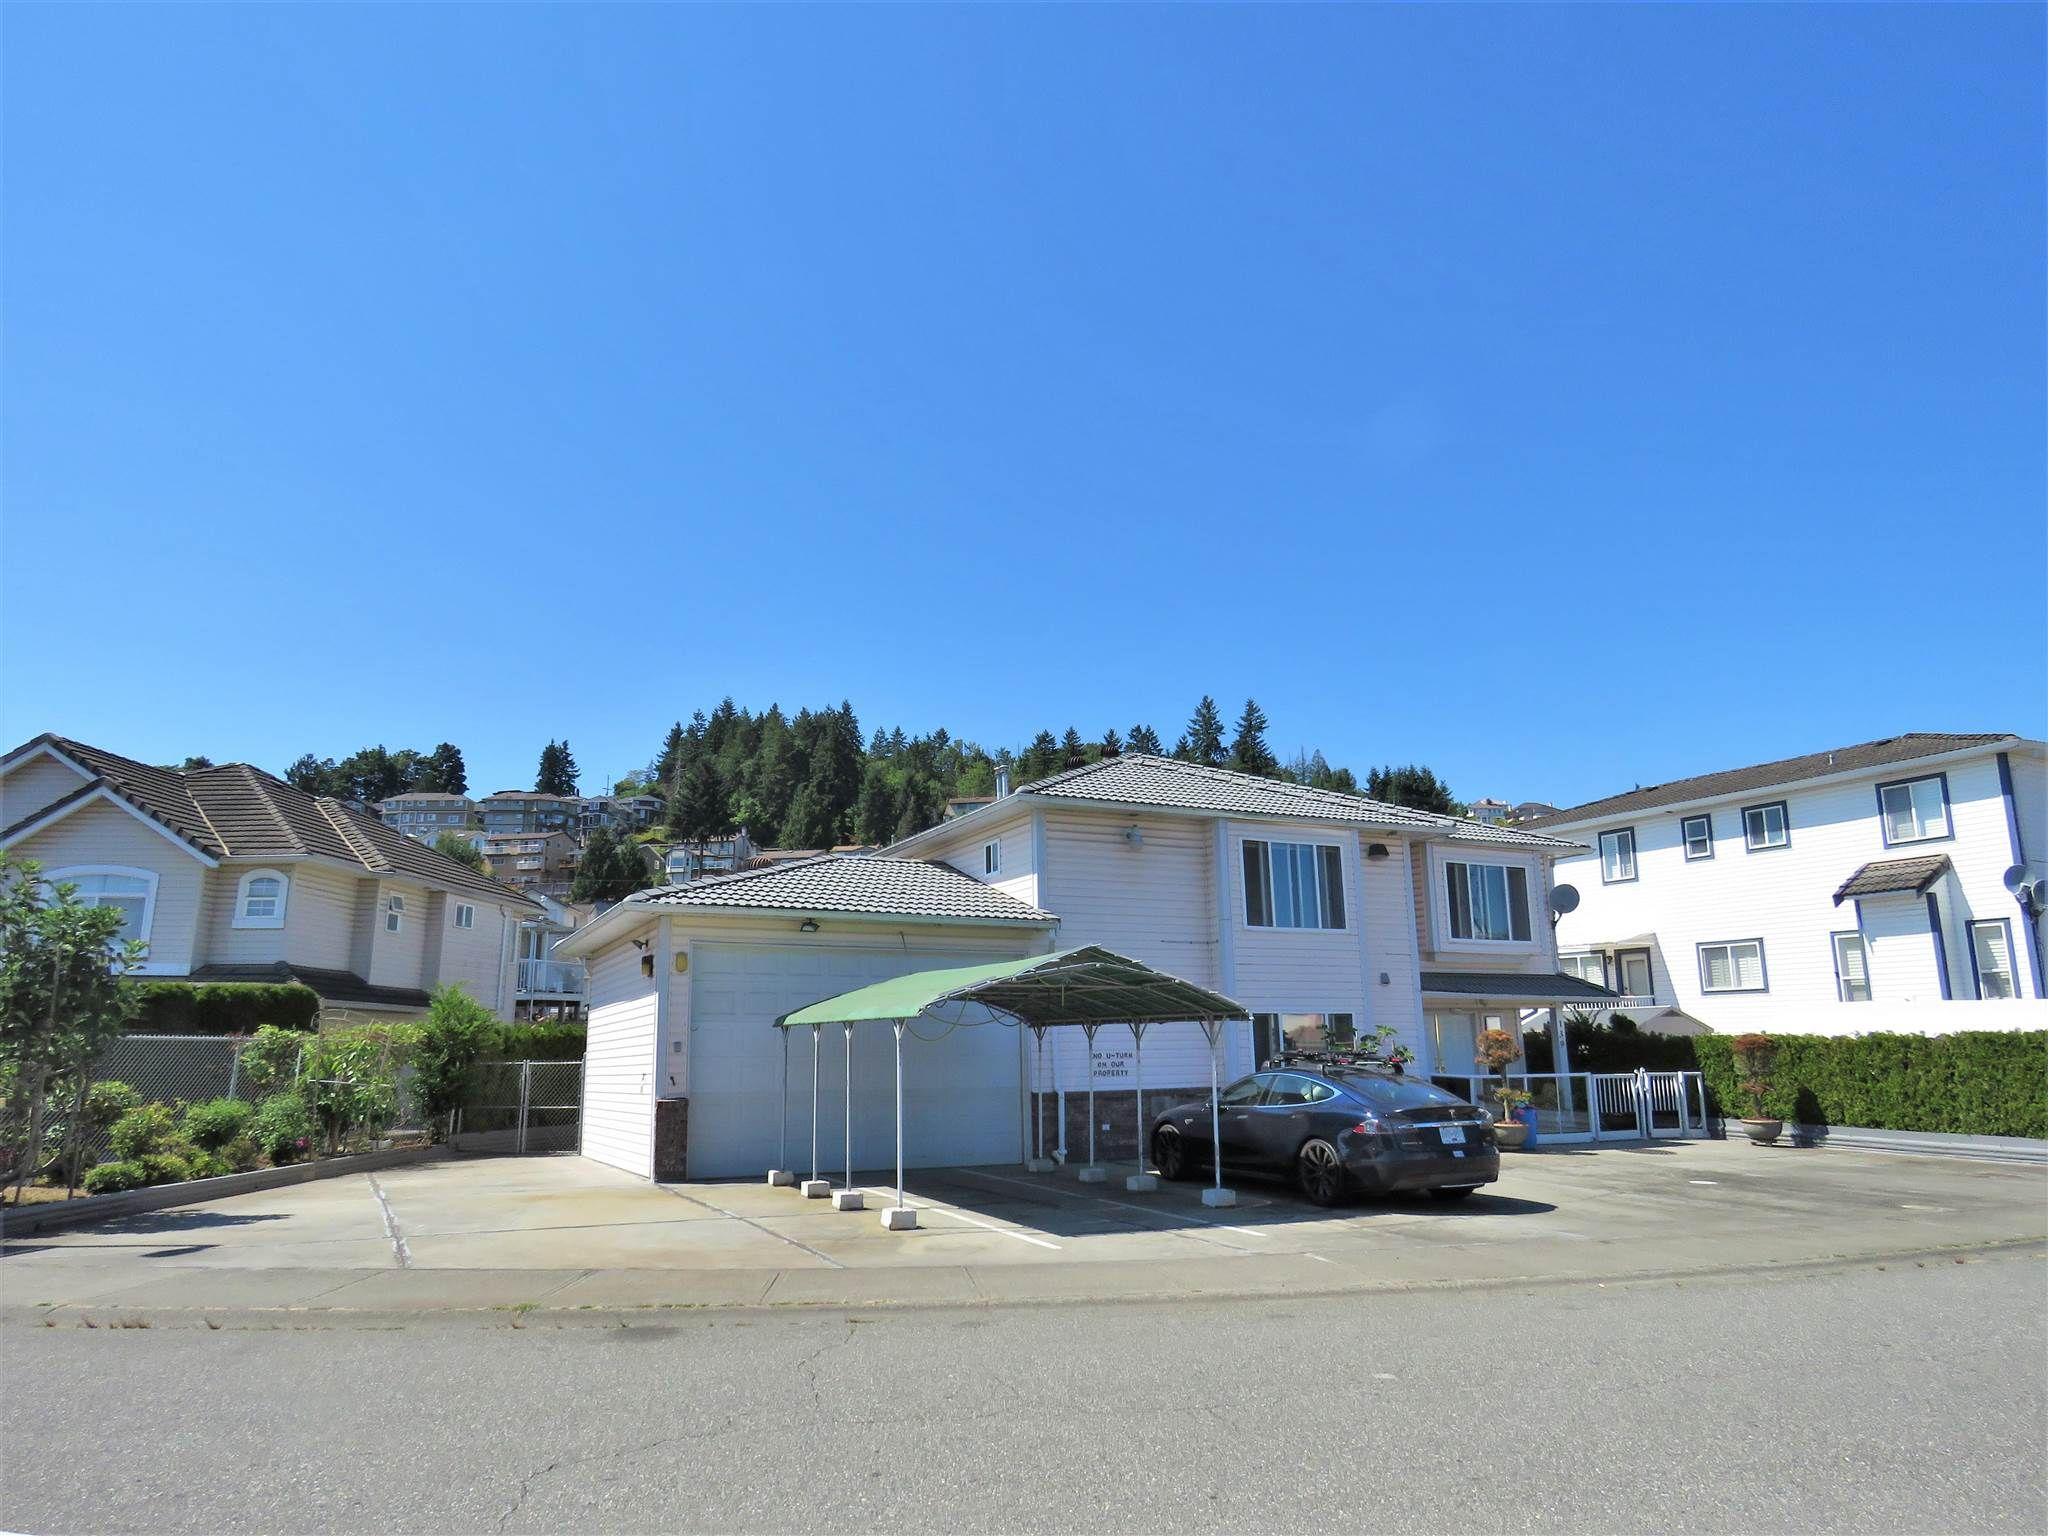 Photo 3: Photos: 139 SAN JUAN Place in Coquitlam: Cape Horn House for sale : MLS®# R2604553